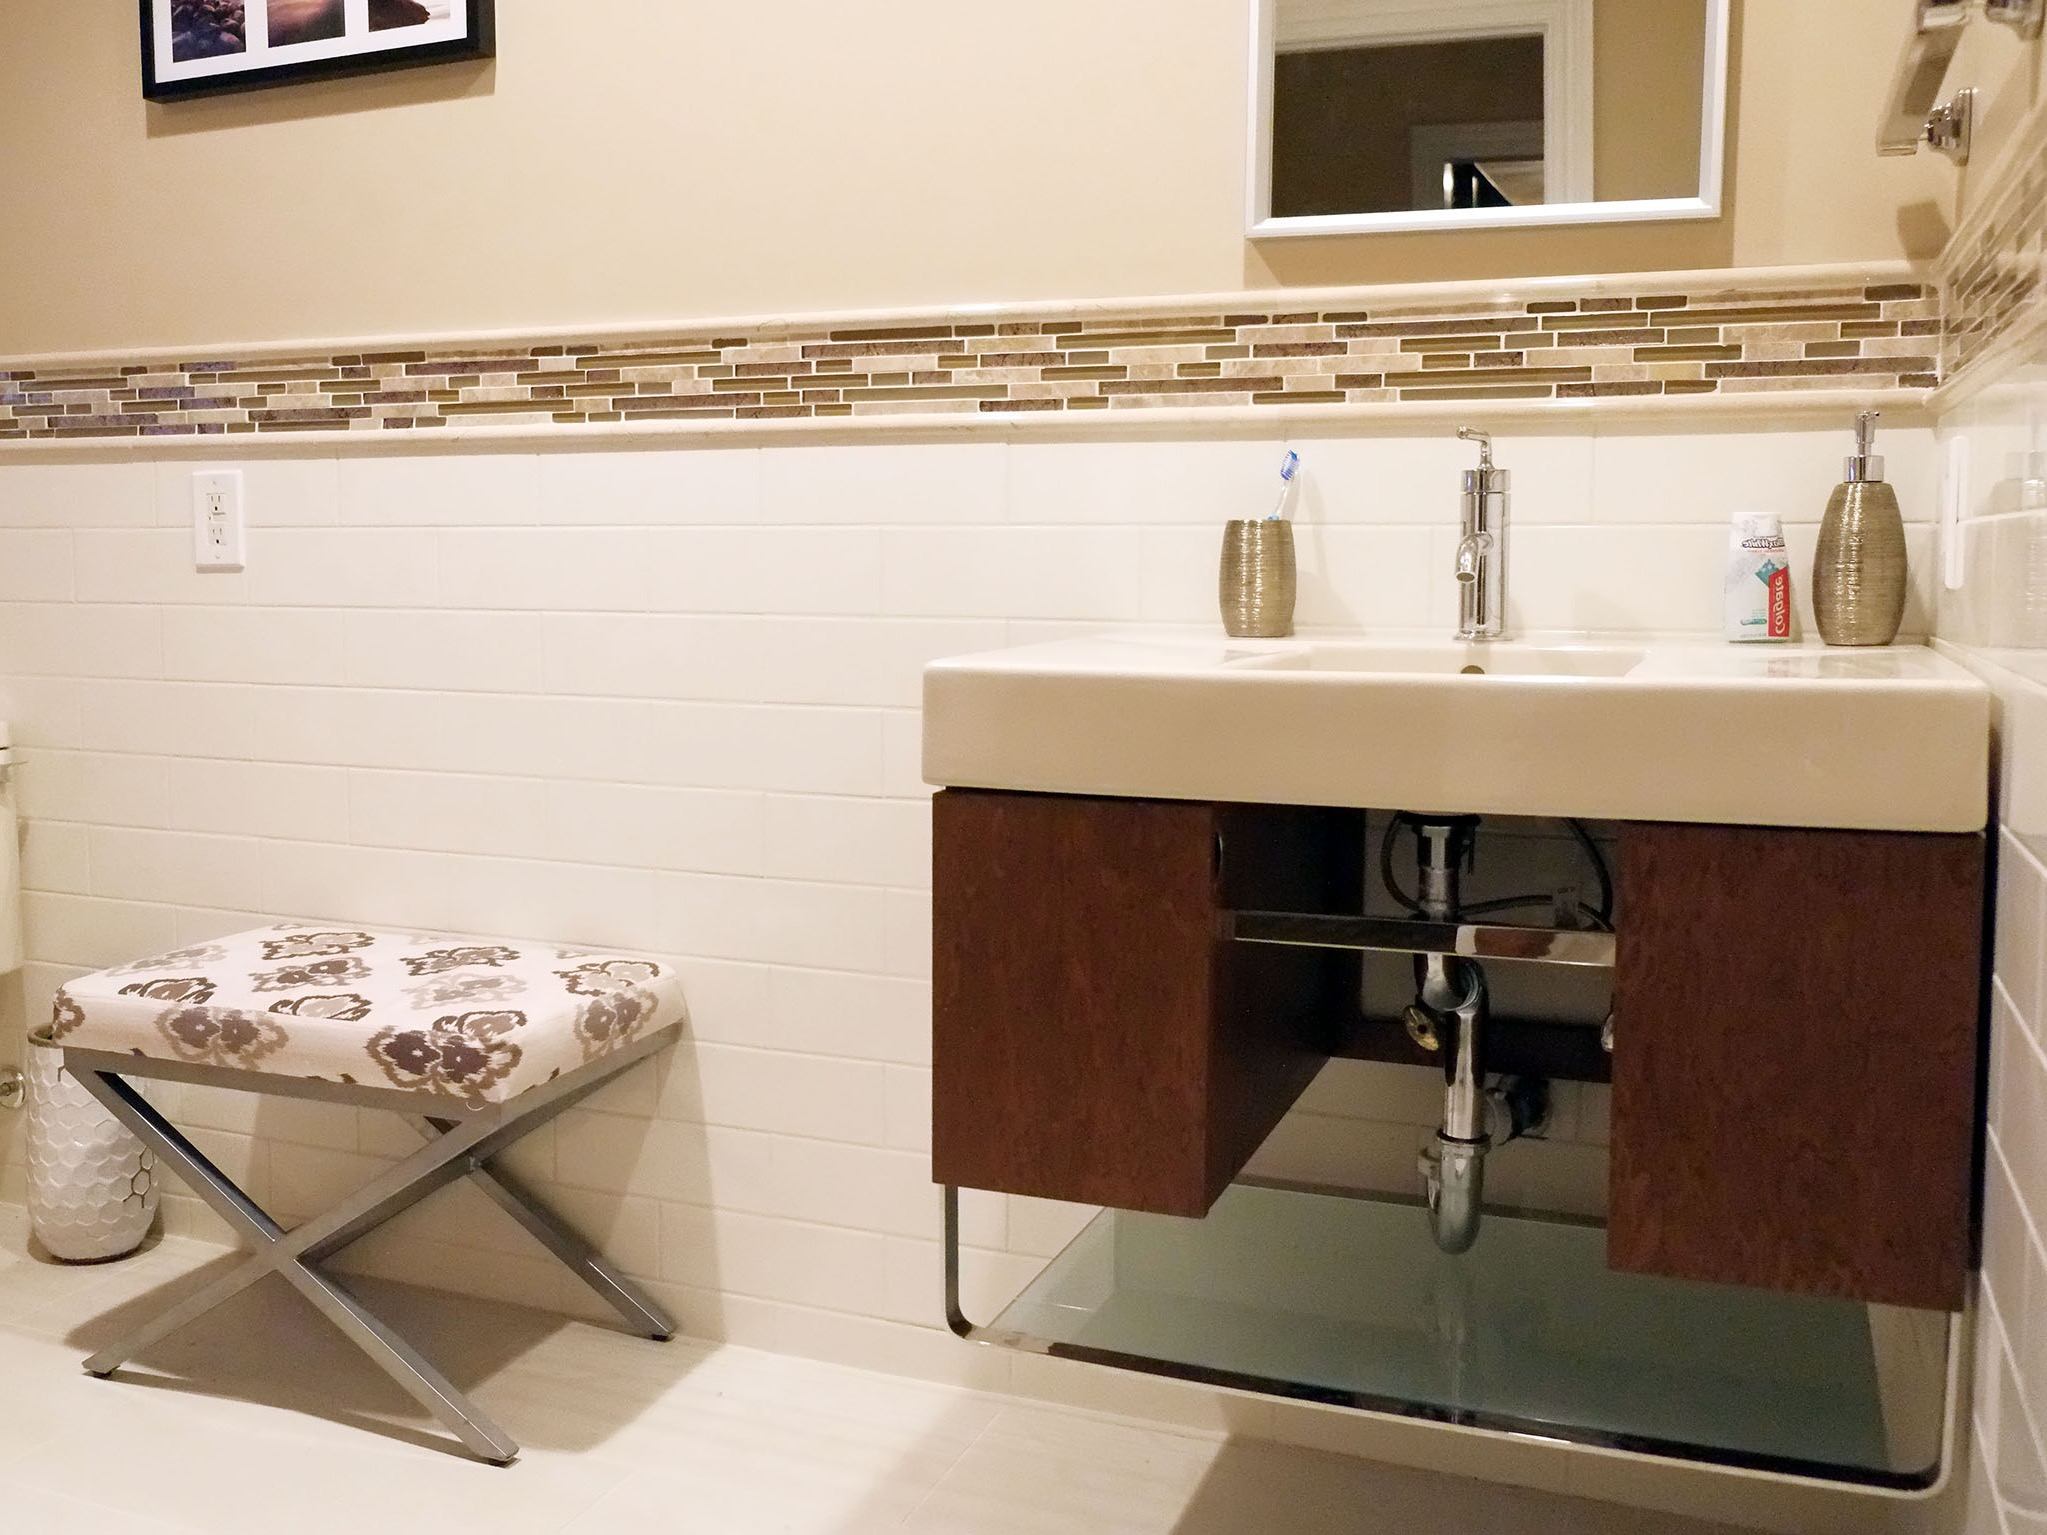 Floating Wood Vanity Furniture For Modern Apartment Bathroom (View 6 of 18)